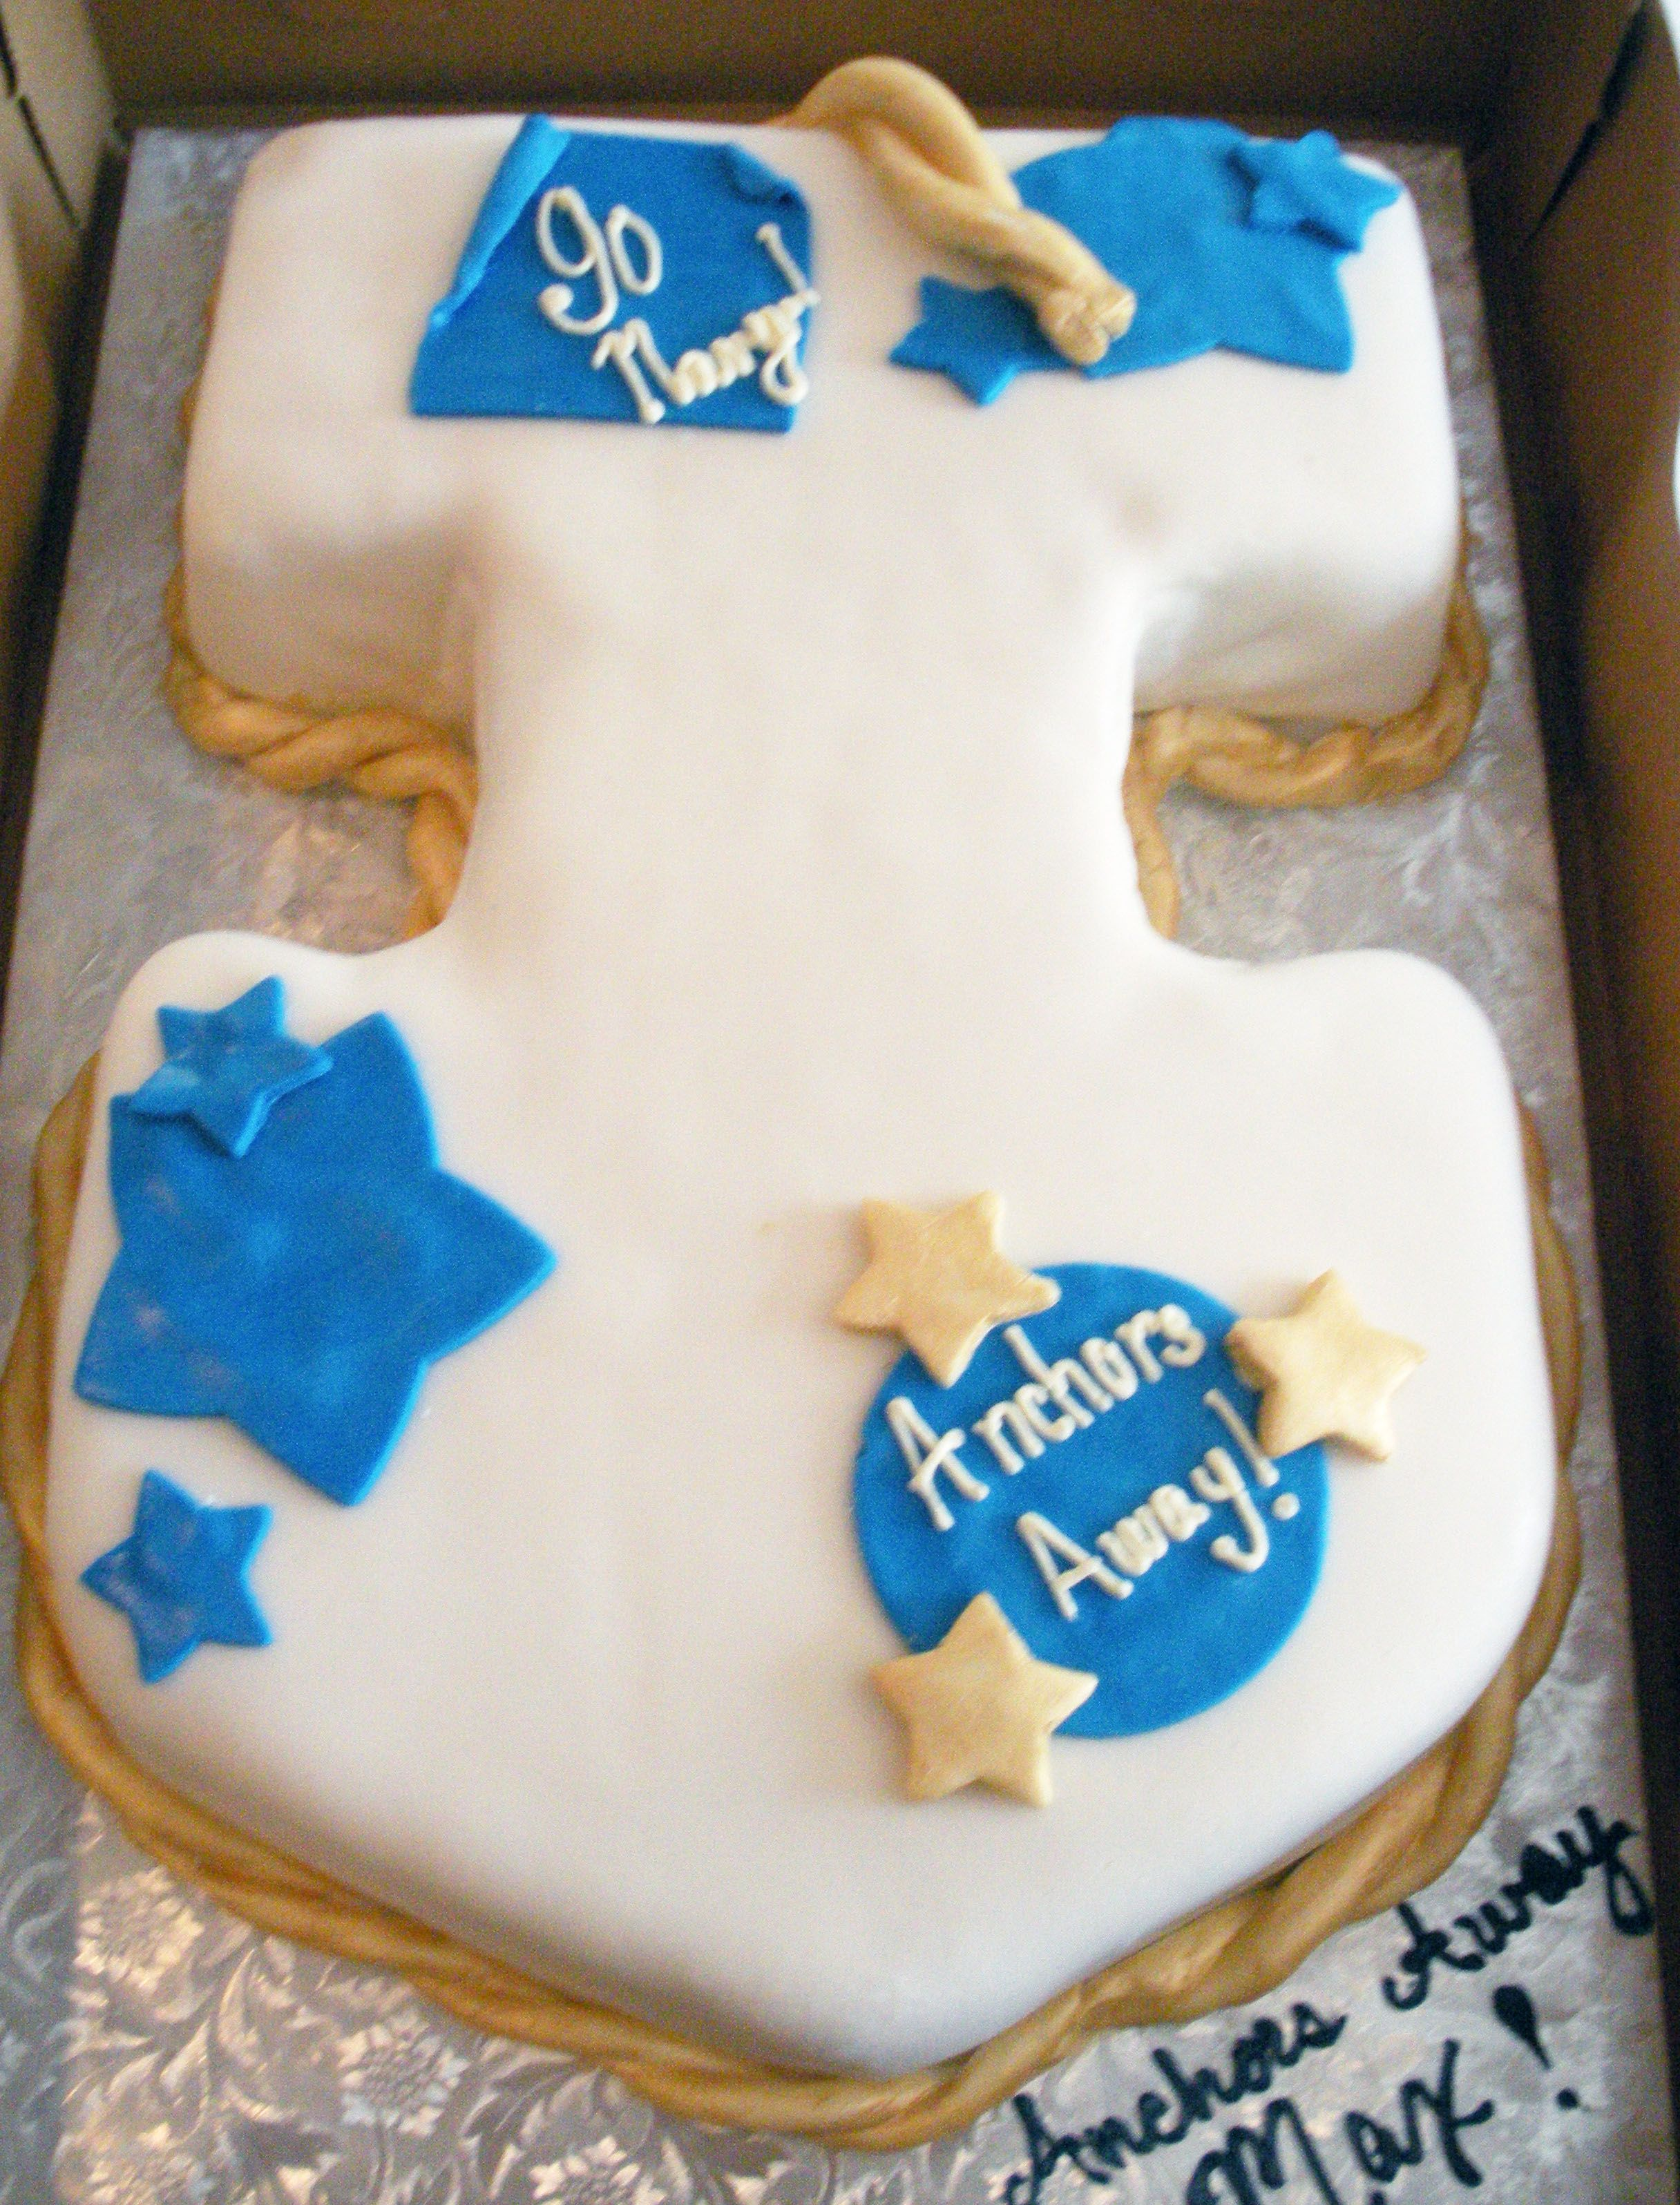 order at www.stefsevents.com  custom cakes